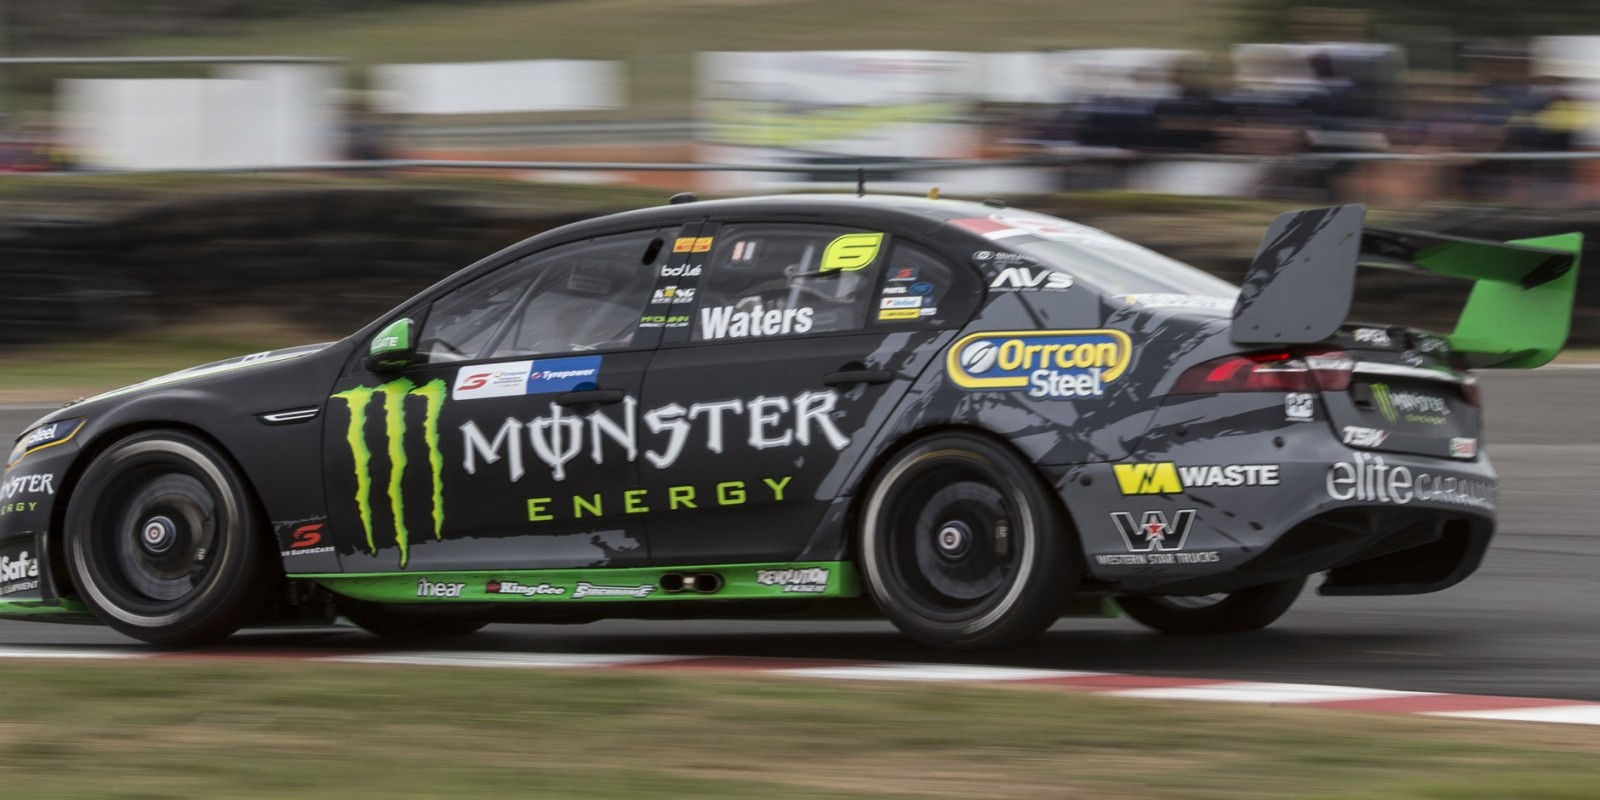 Monster Energy Racing at V8 Supercars - Symmons Plains 2016